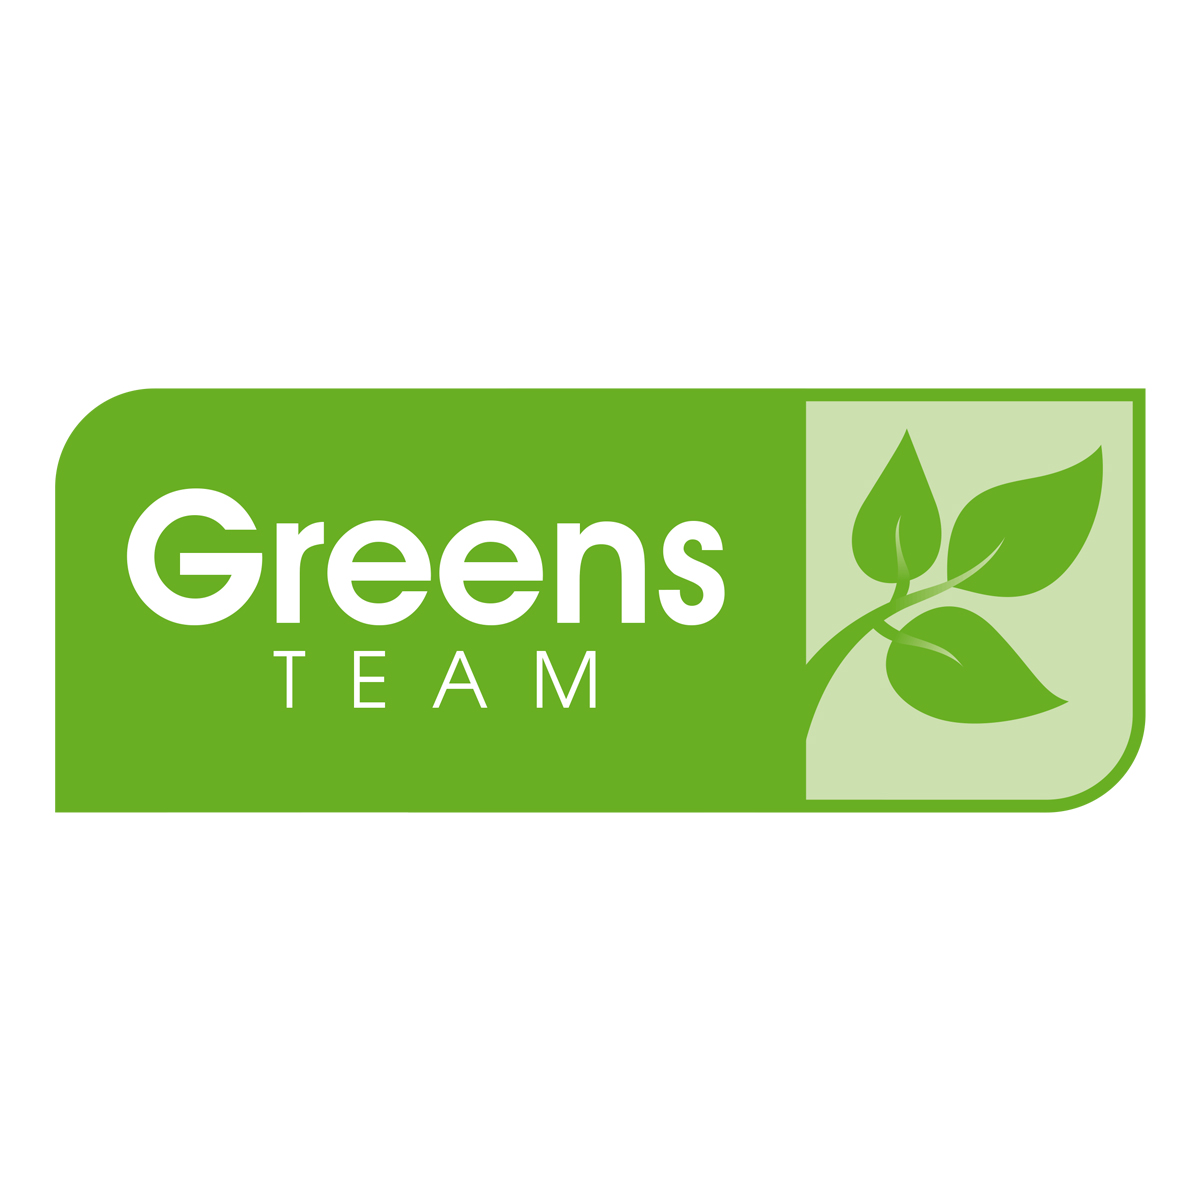 Greens Team Logo BFDG Sponsor